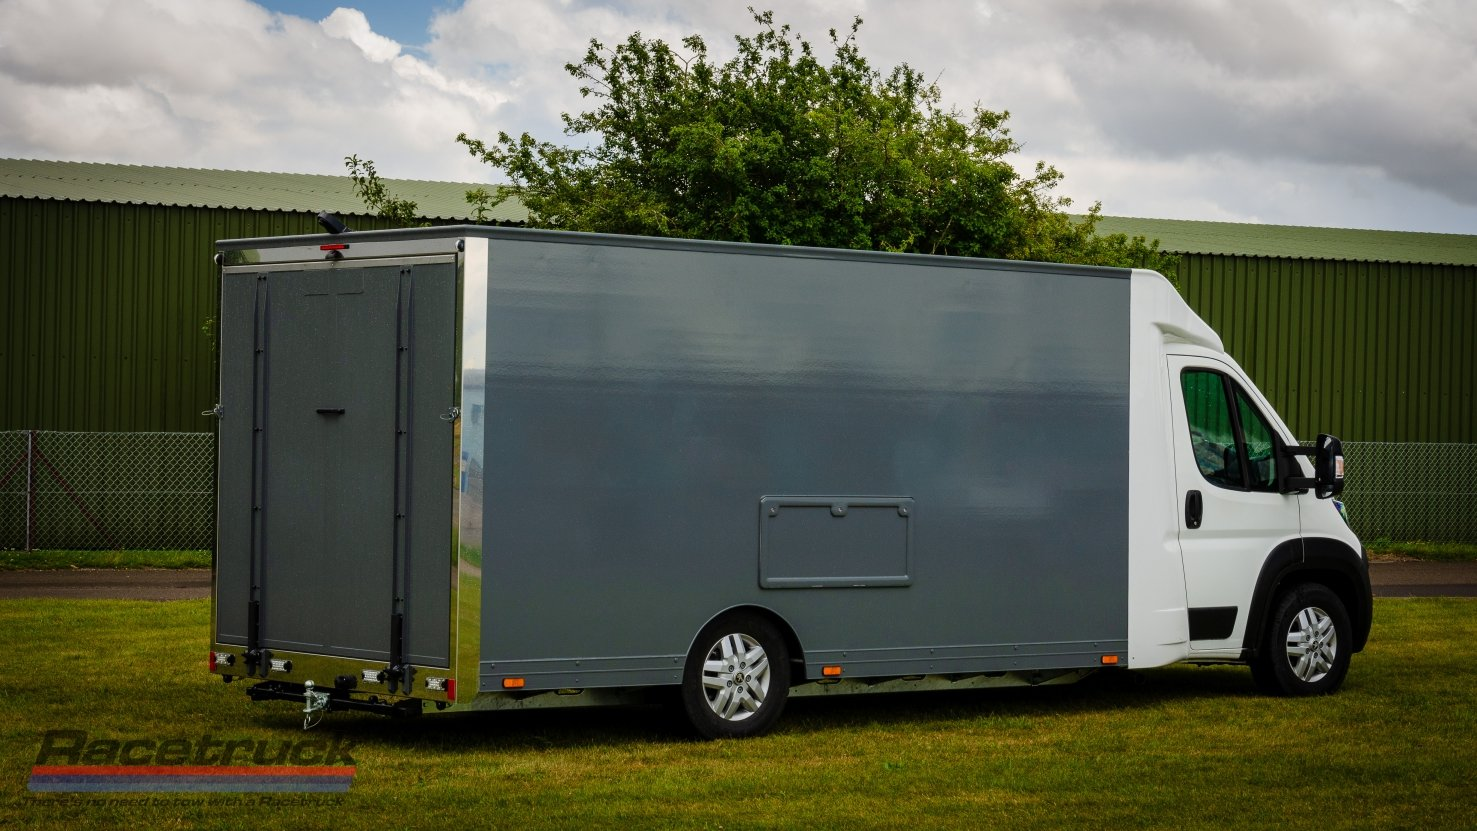 2021 Enclosed Car Transporter For Sale (picture 5 of 10)